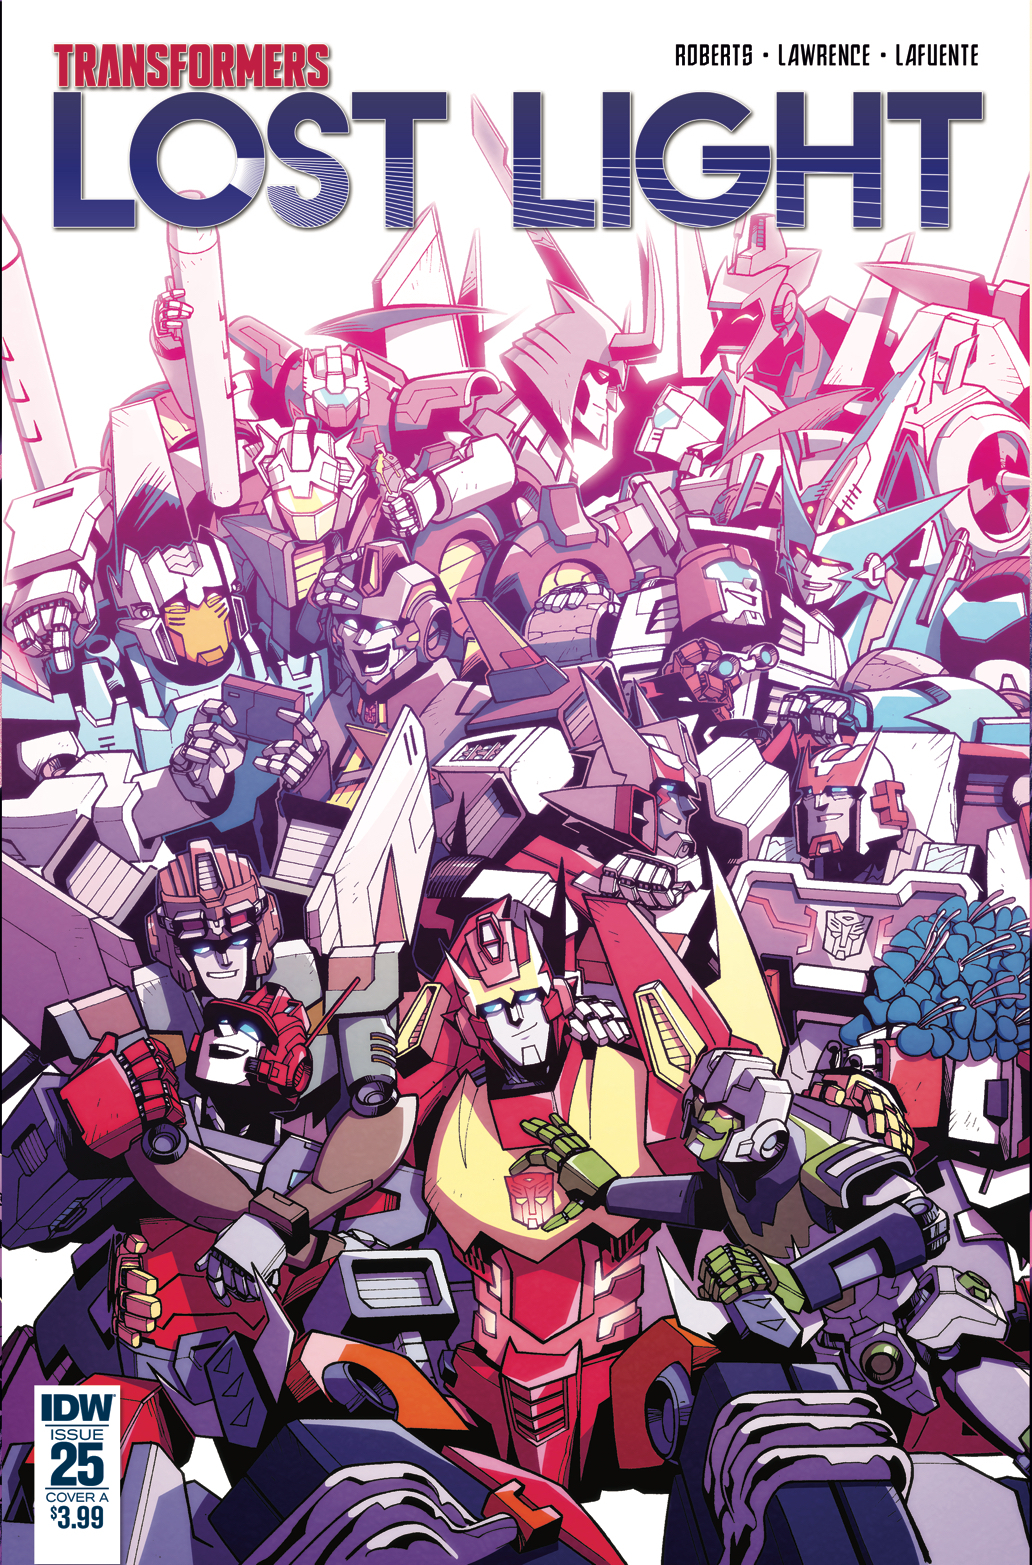 Transformers News: Jack Lawrence / Joana Lafuente Cover for IDW Transformers: Lost Light #25